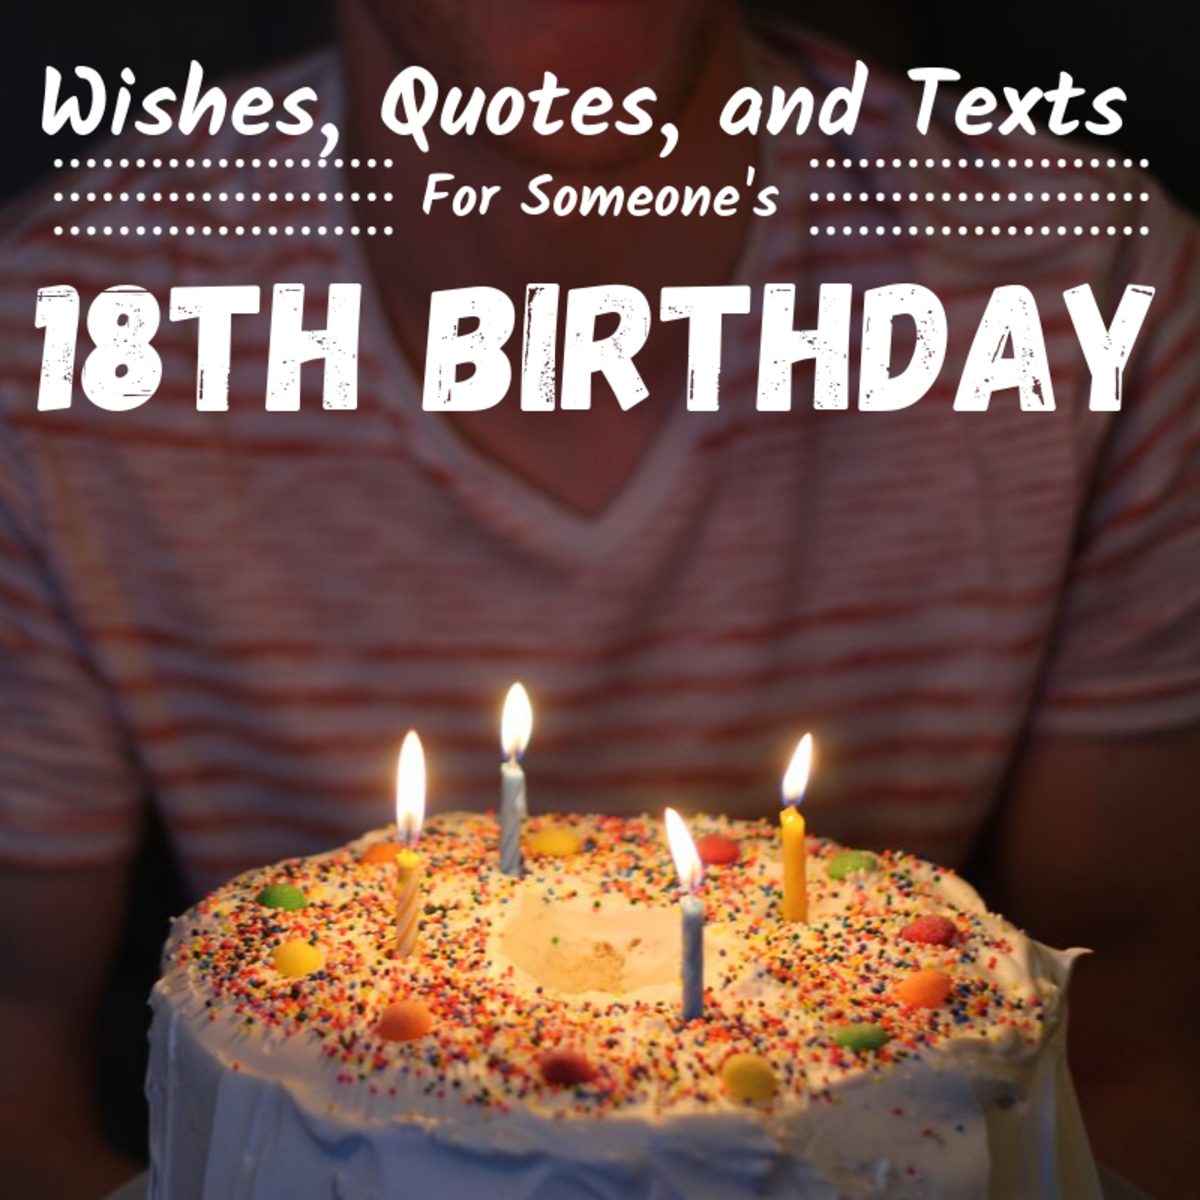 18th Birthday Wishes Texts And Quotes 152 Example Messages Holidappy Celebrations